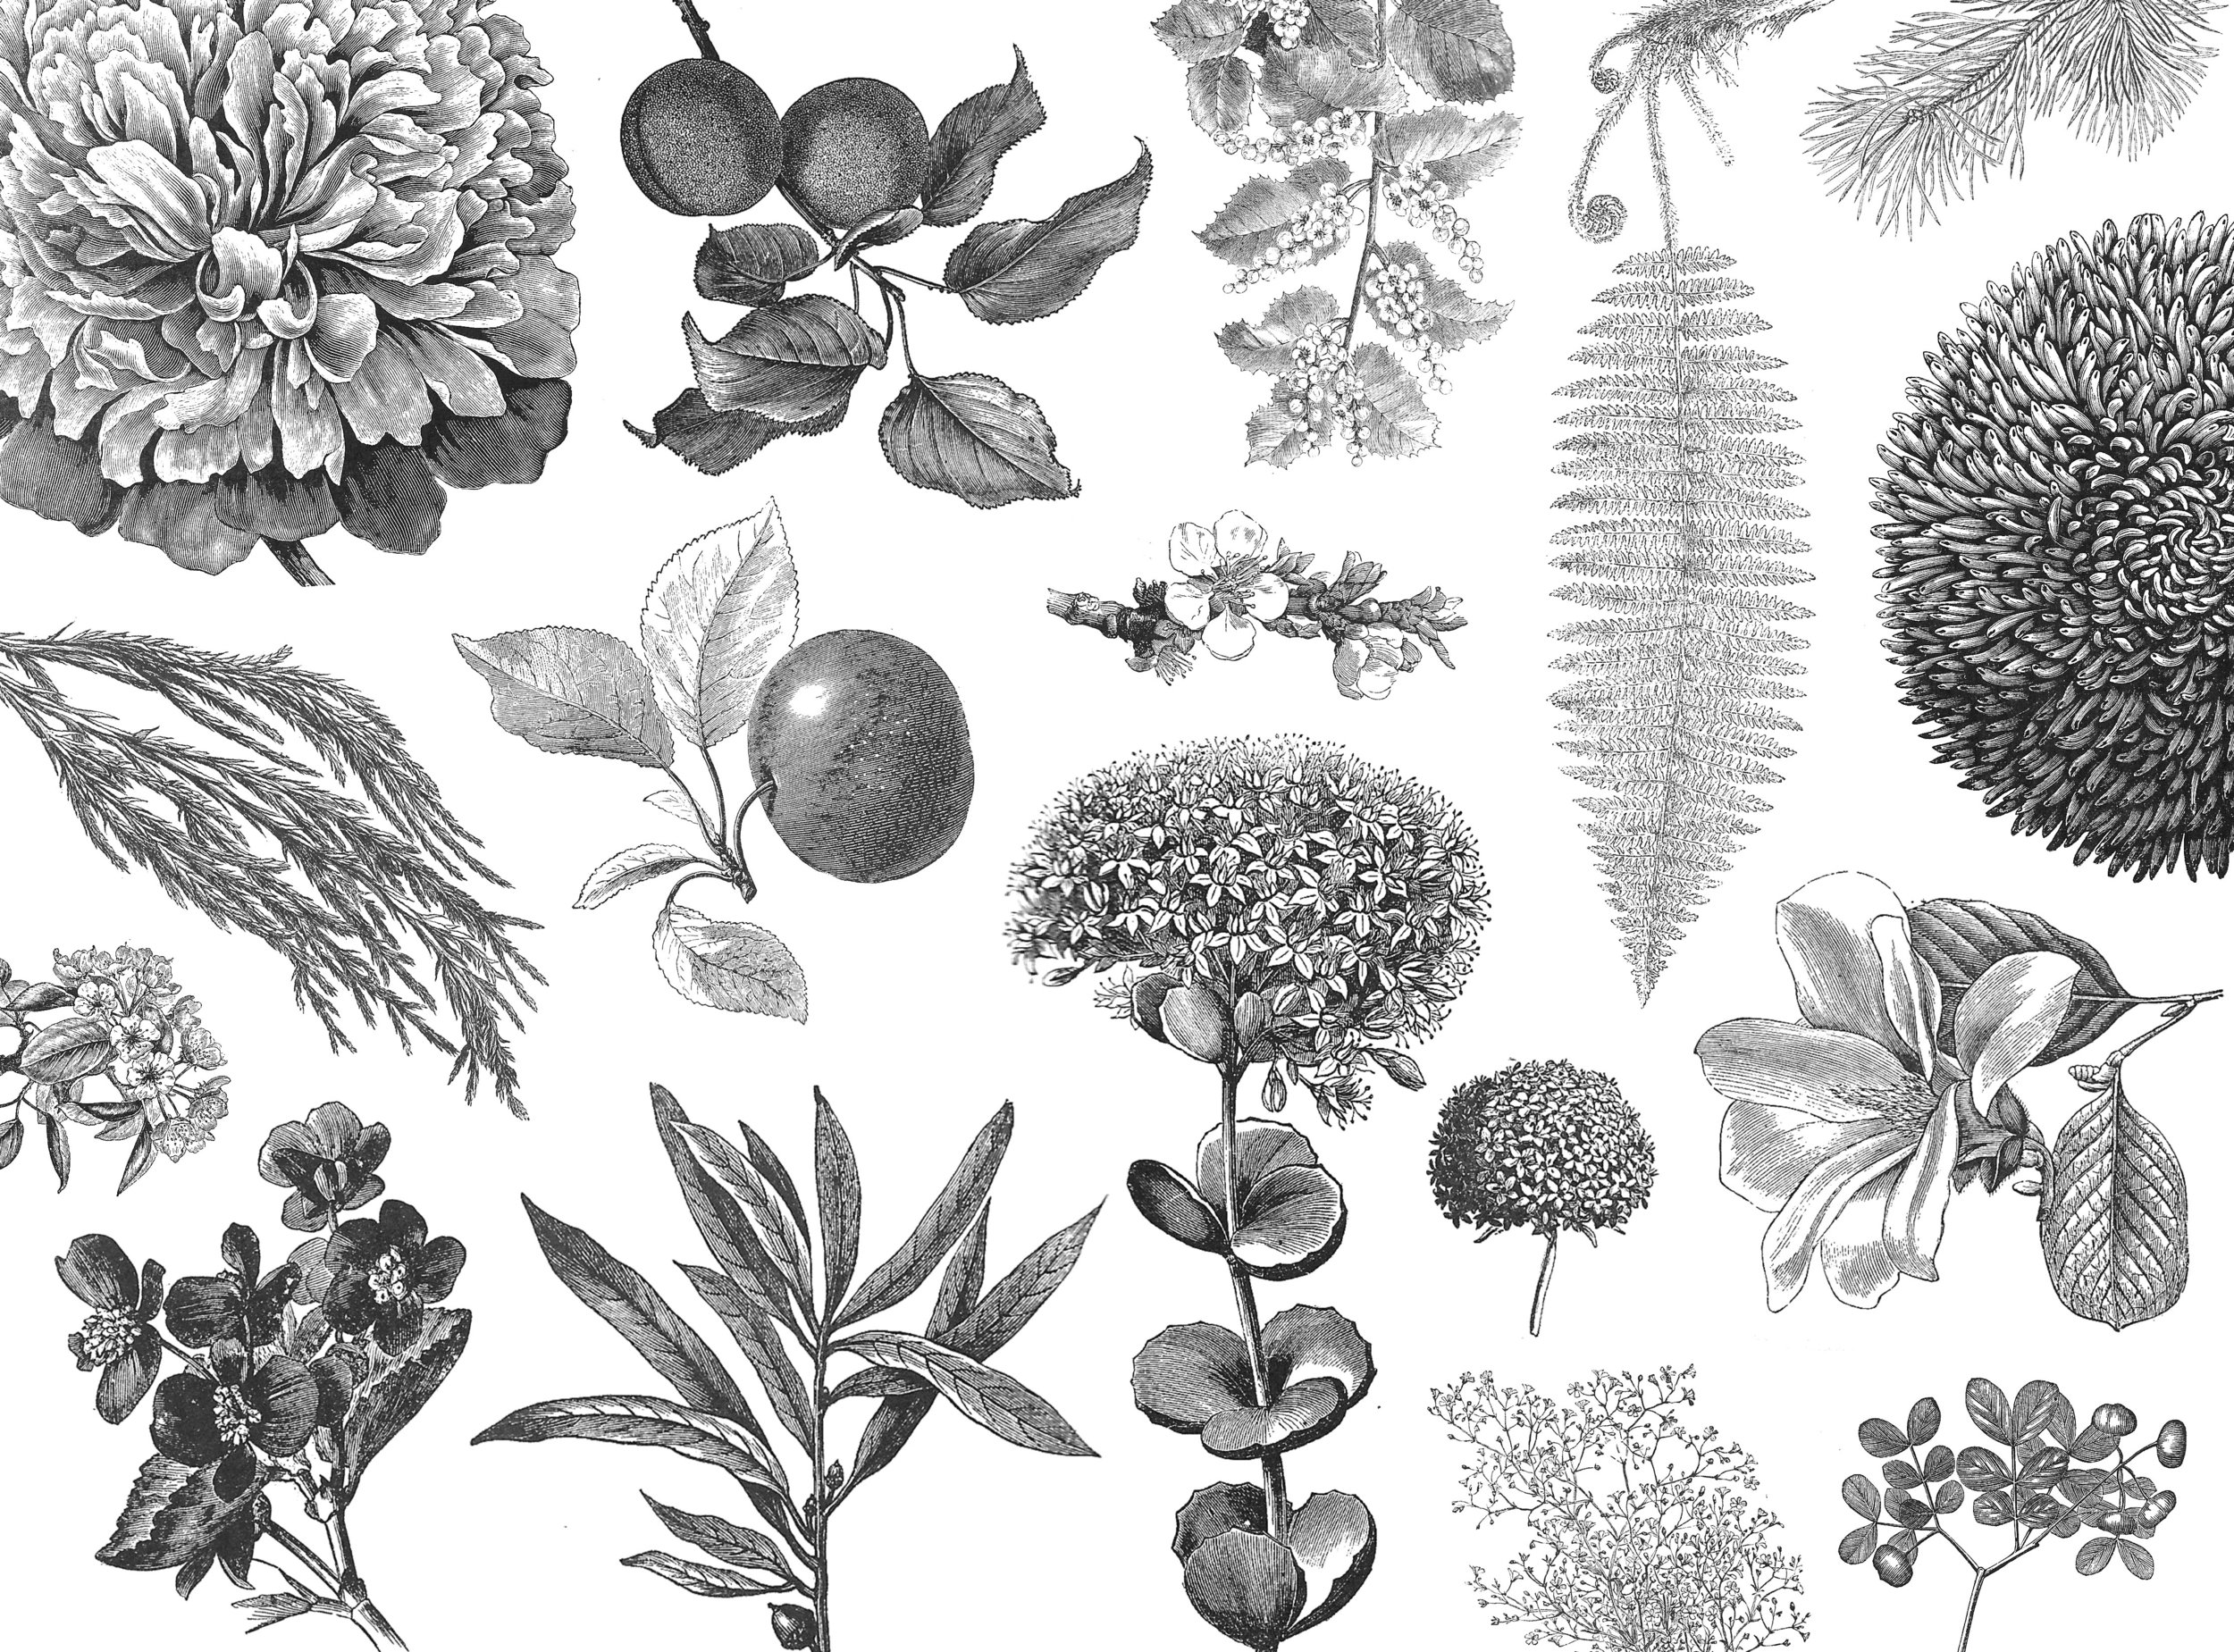 Found vintage floral illustrations adorn the bottles and allude to the many ingredients and natural scents used in the essential oils.